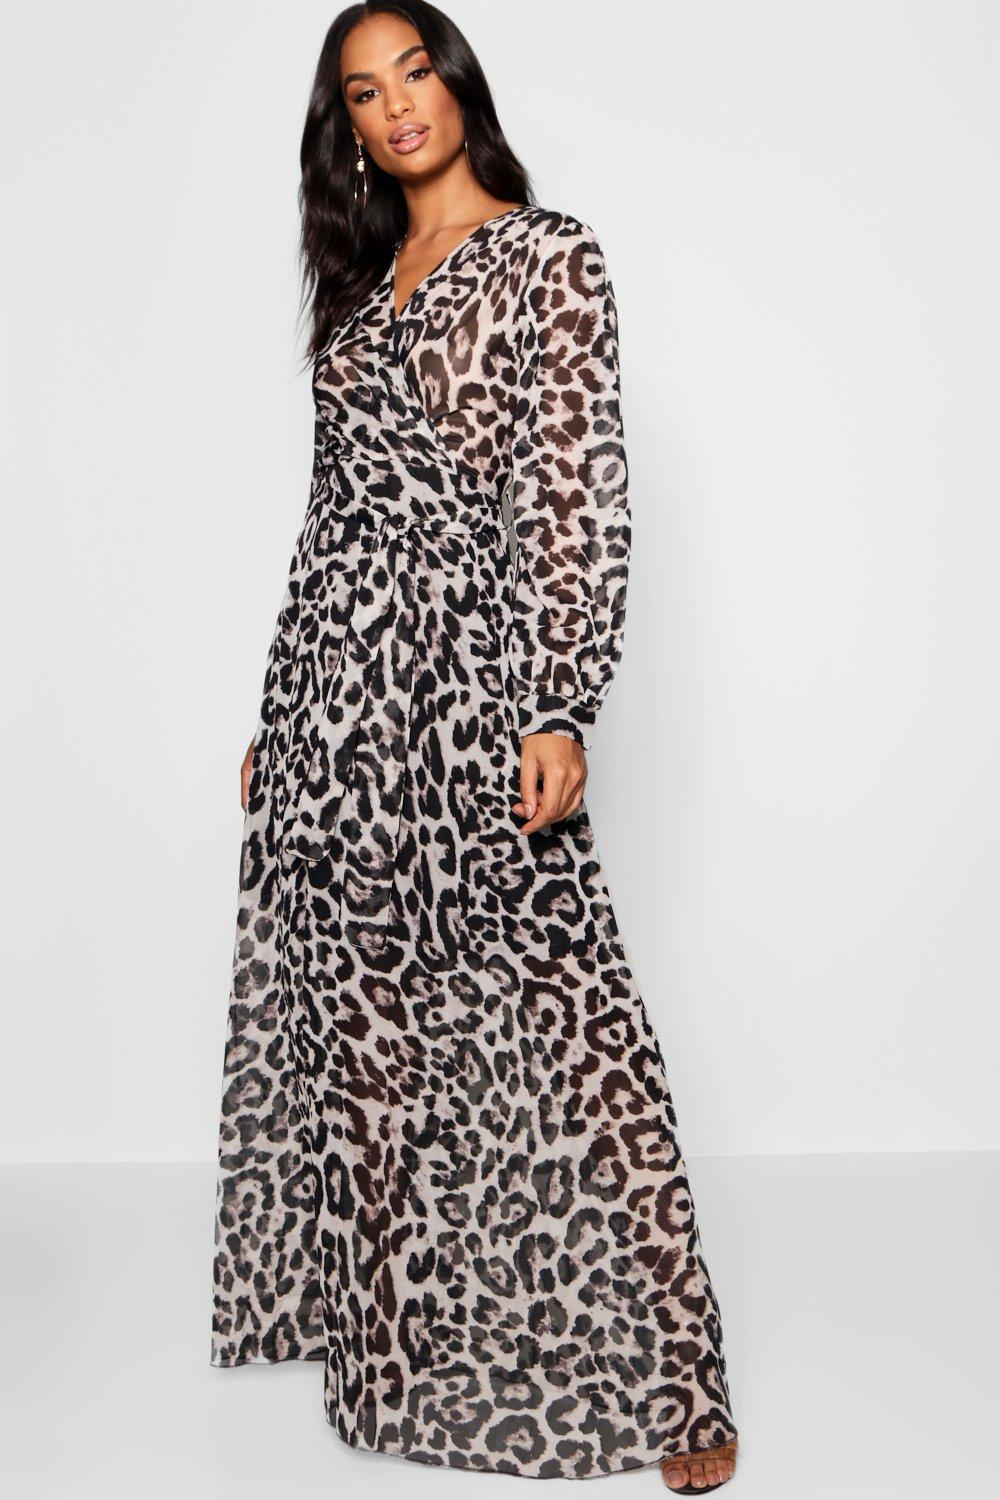 2090f3ac0a25 Boohoo Tall Sheer Leopard Print Maxi Dress in Gray - Lyst